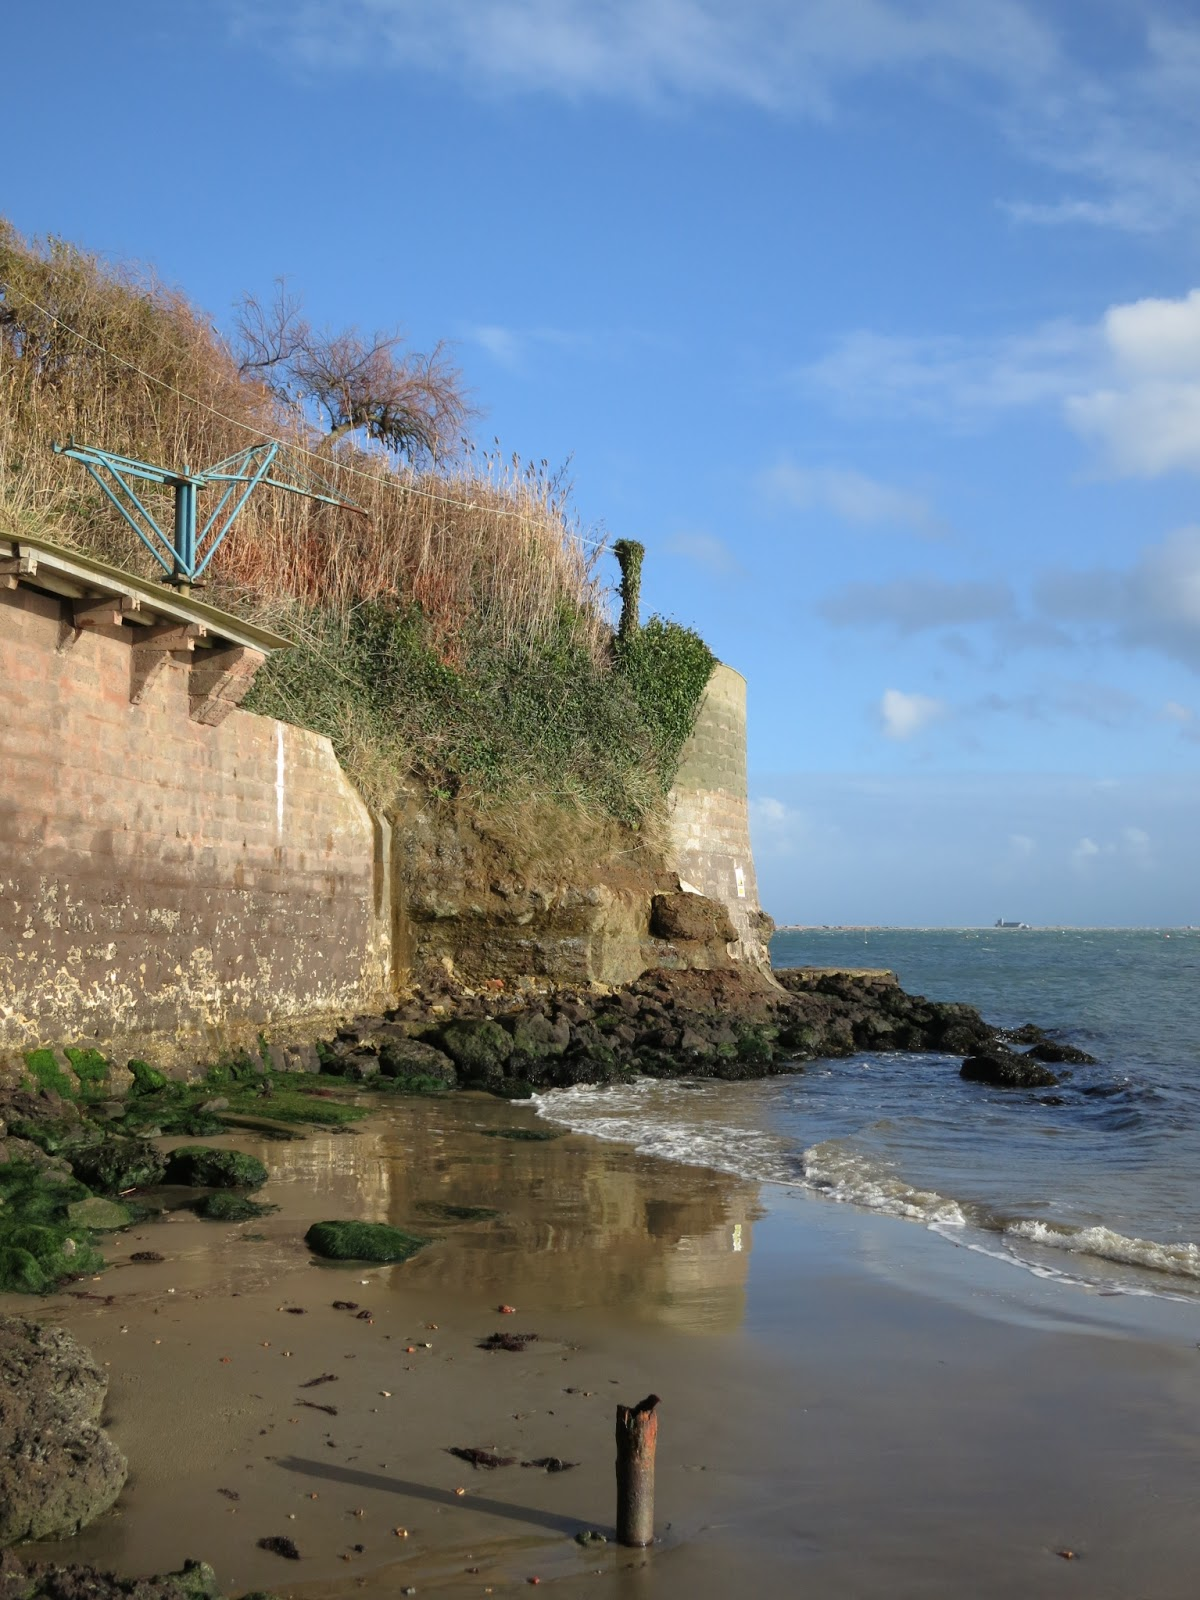 Tall wall to stop sea eroding cliff.